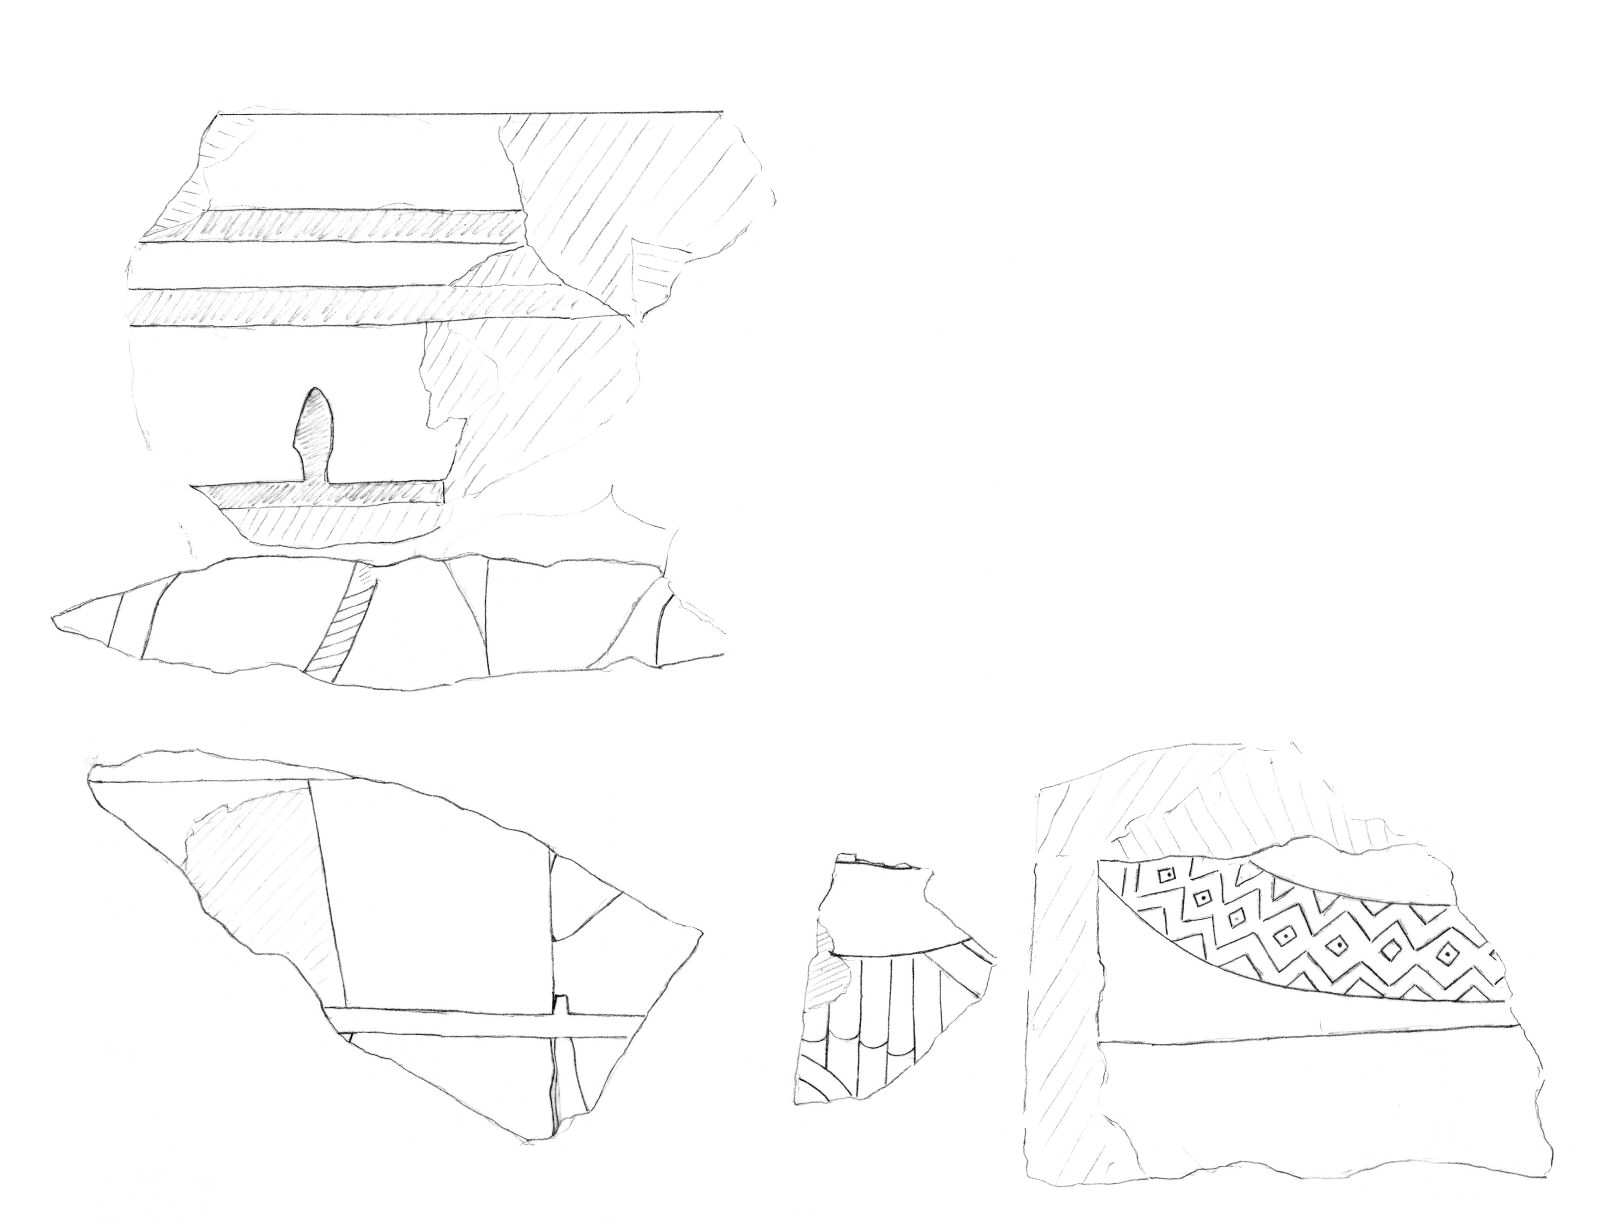 Drawings: G 2210: fragments of relief